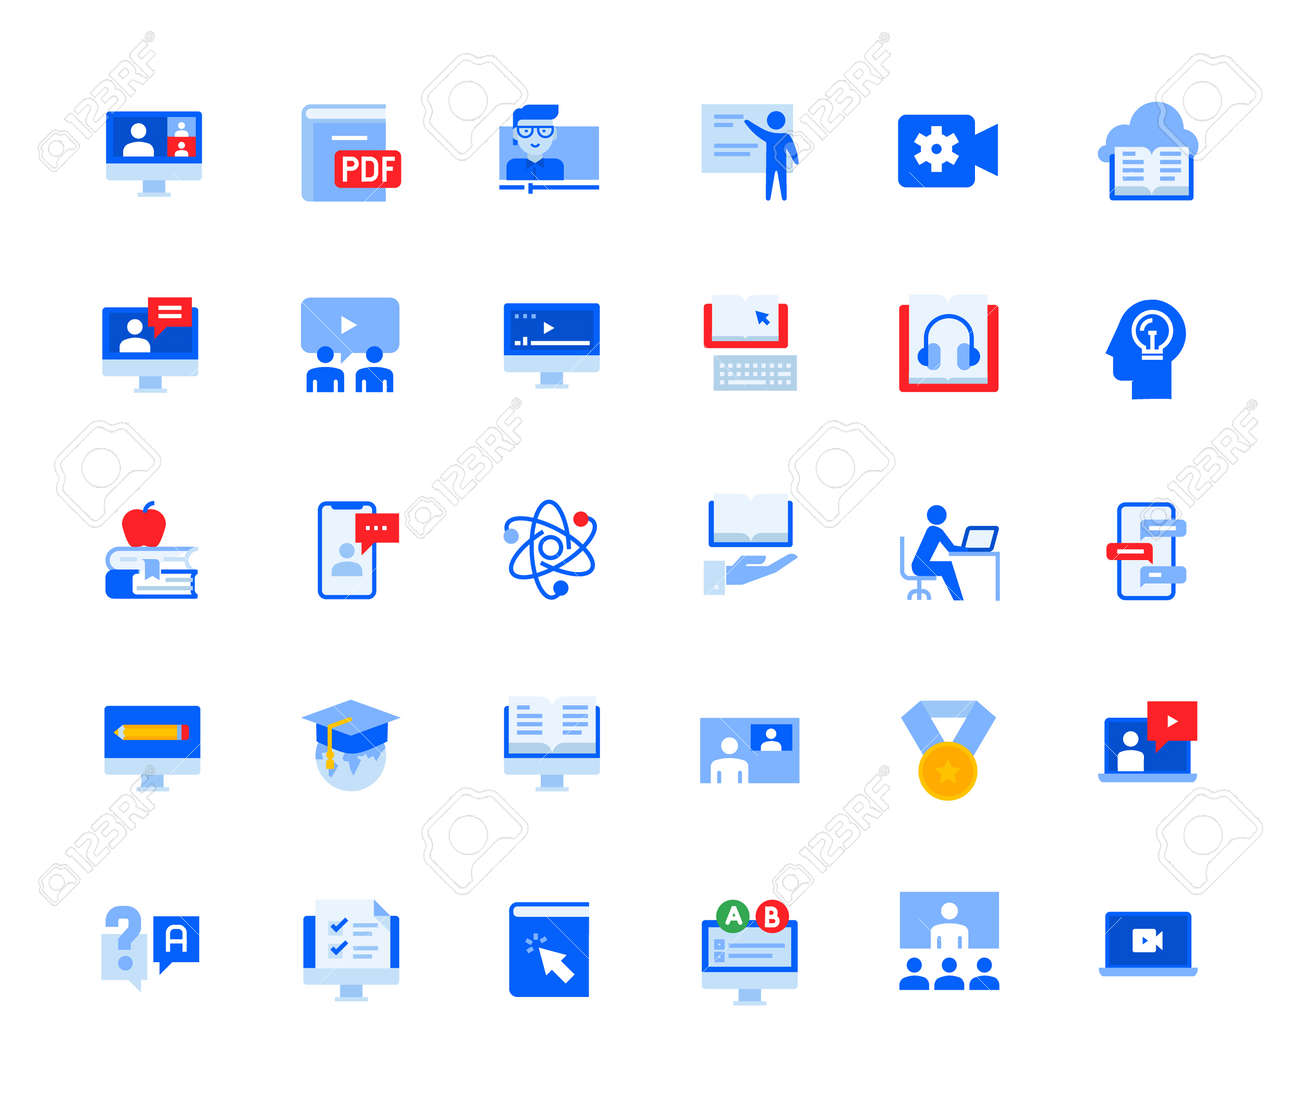 Video call and online meeting icons set for personal and business use. Vector illustration icons for graphic and web design, app development, marketing material and business presentation. - 167494381